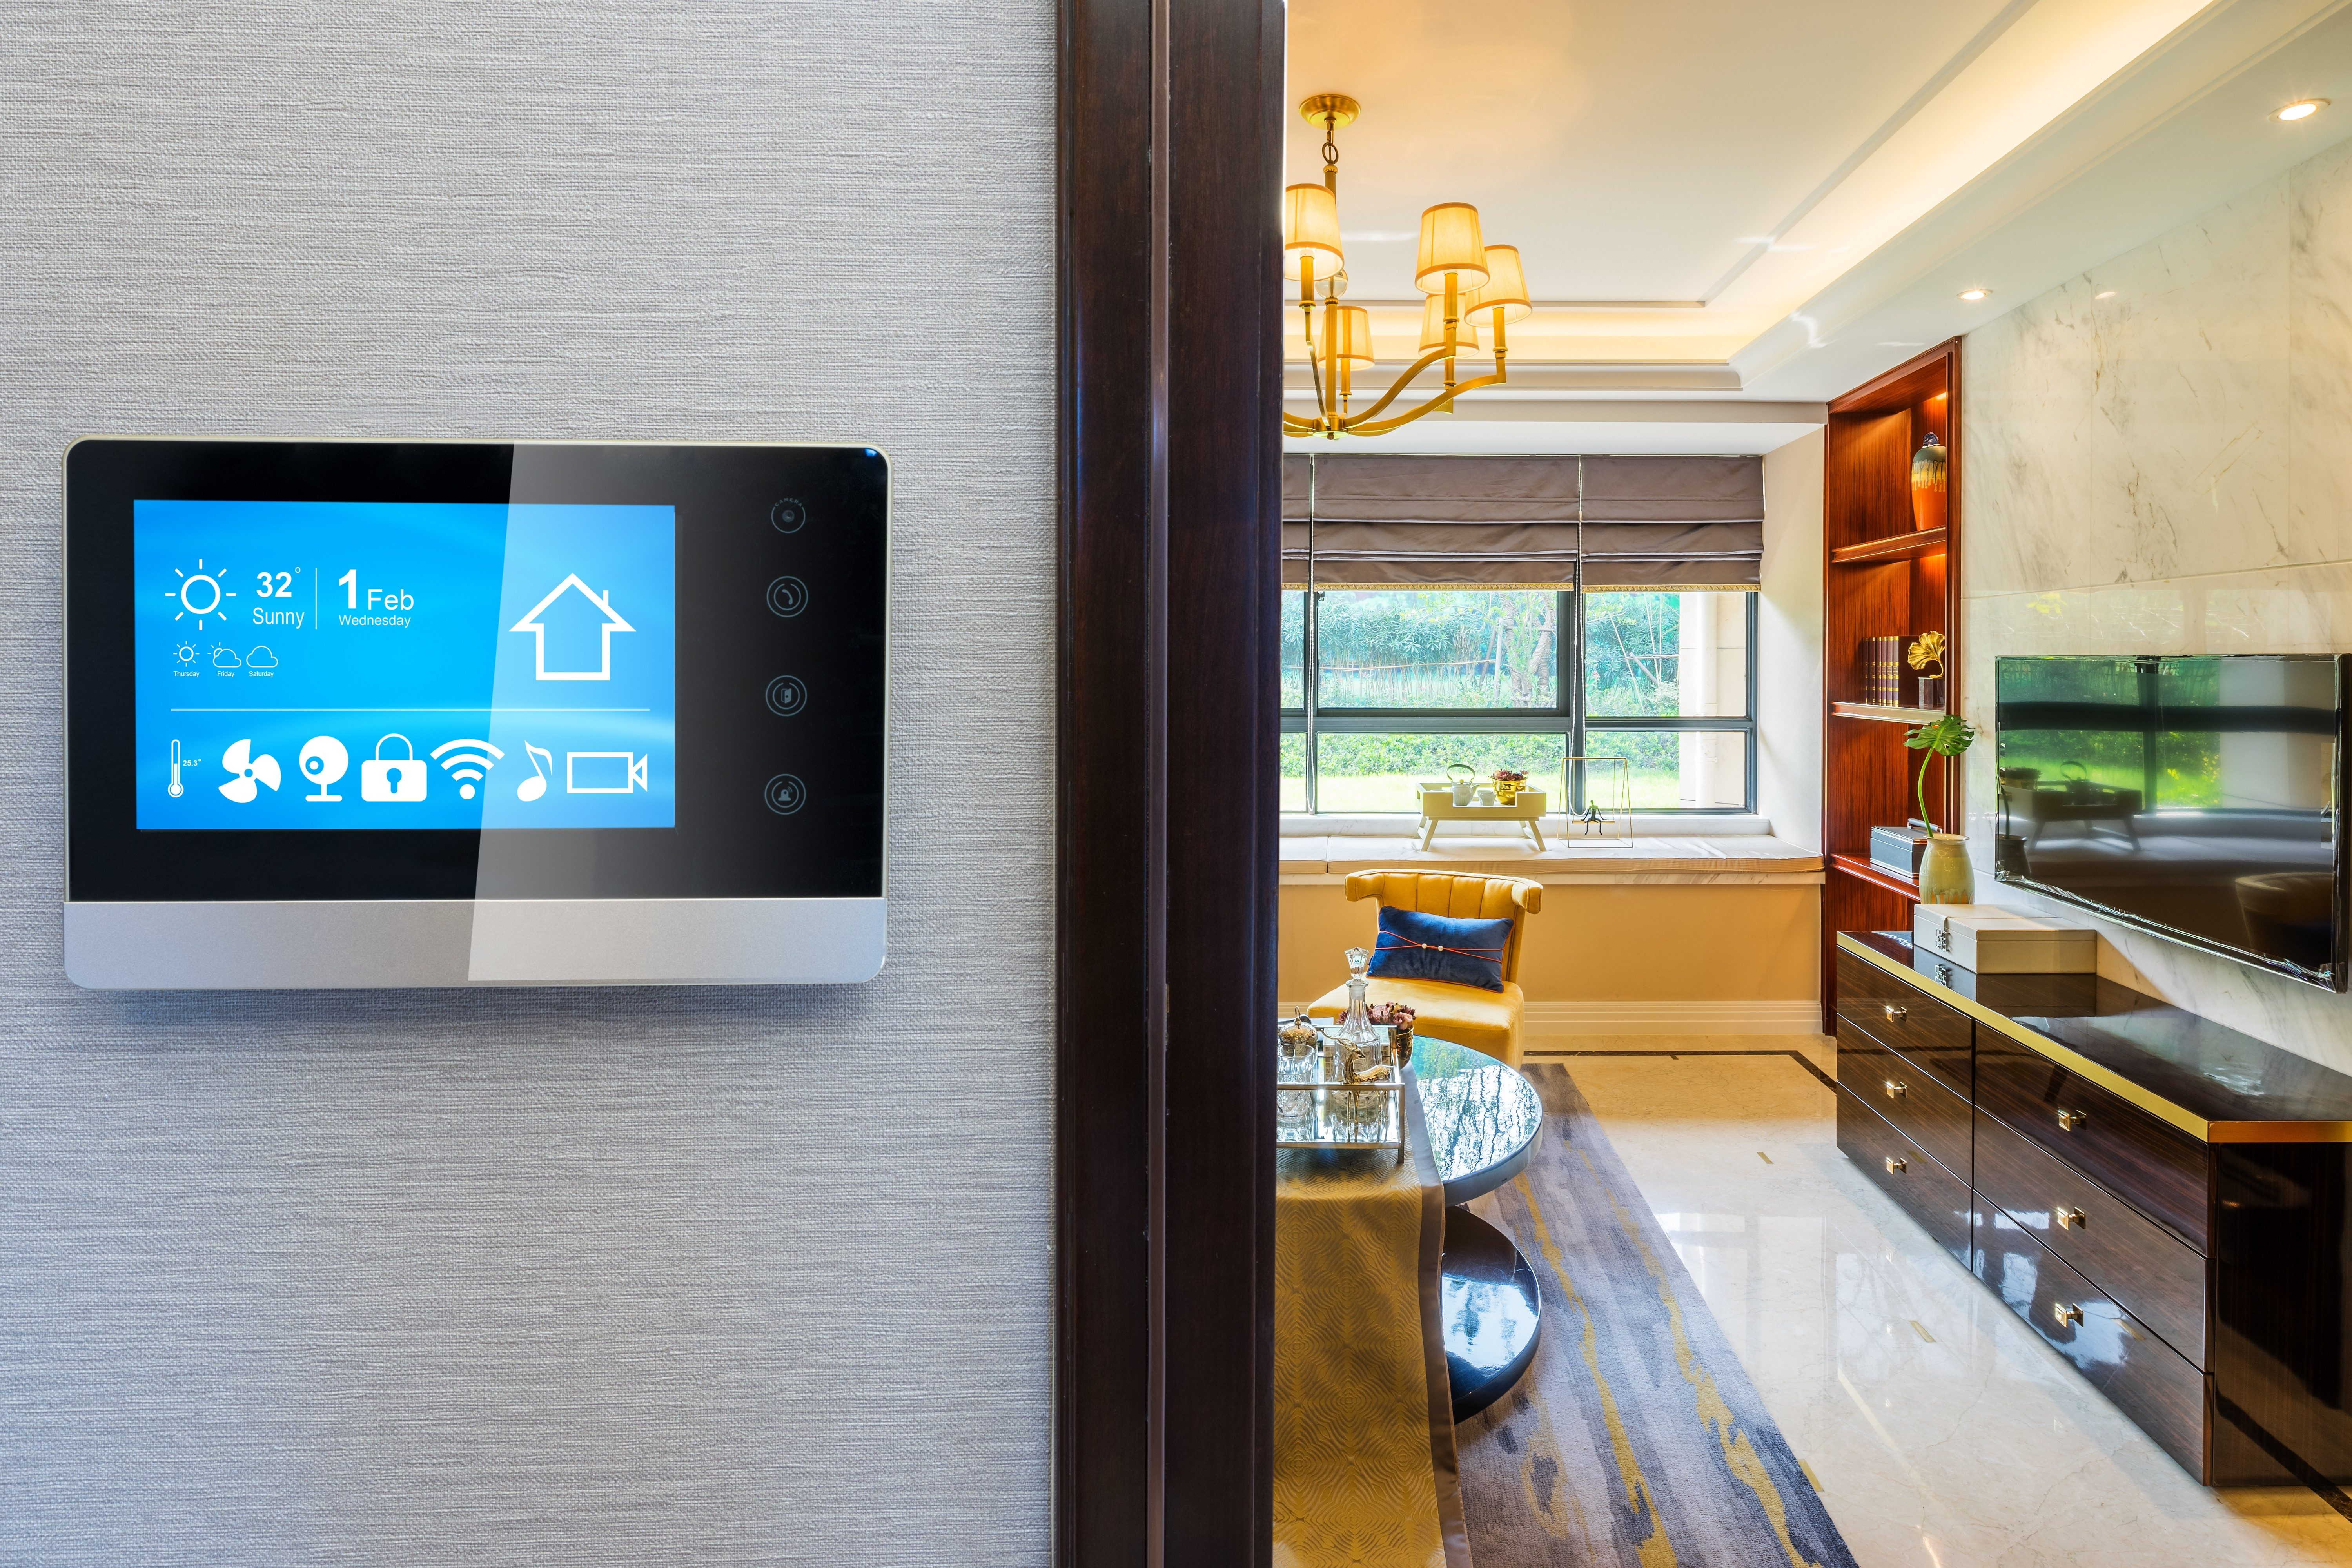 The Things You Need To Have A Smart Home Readers Digest